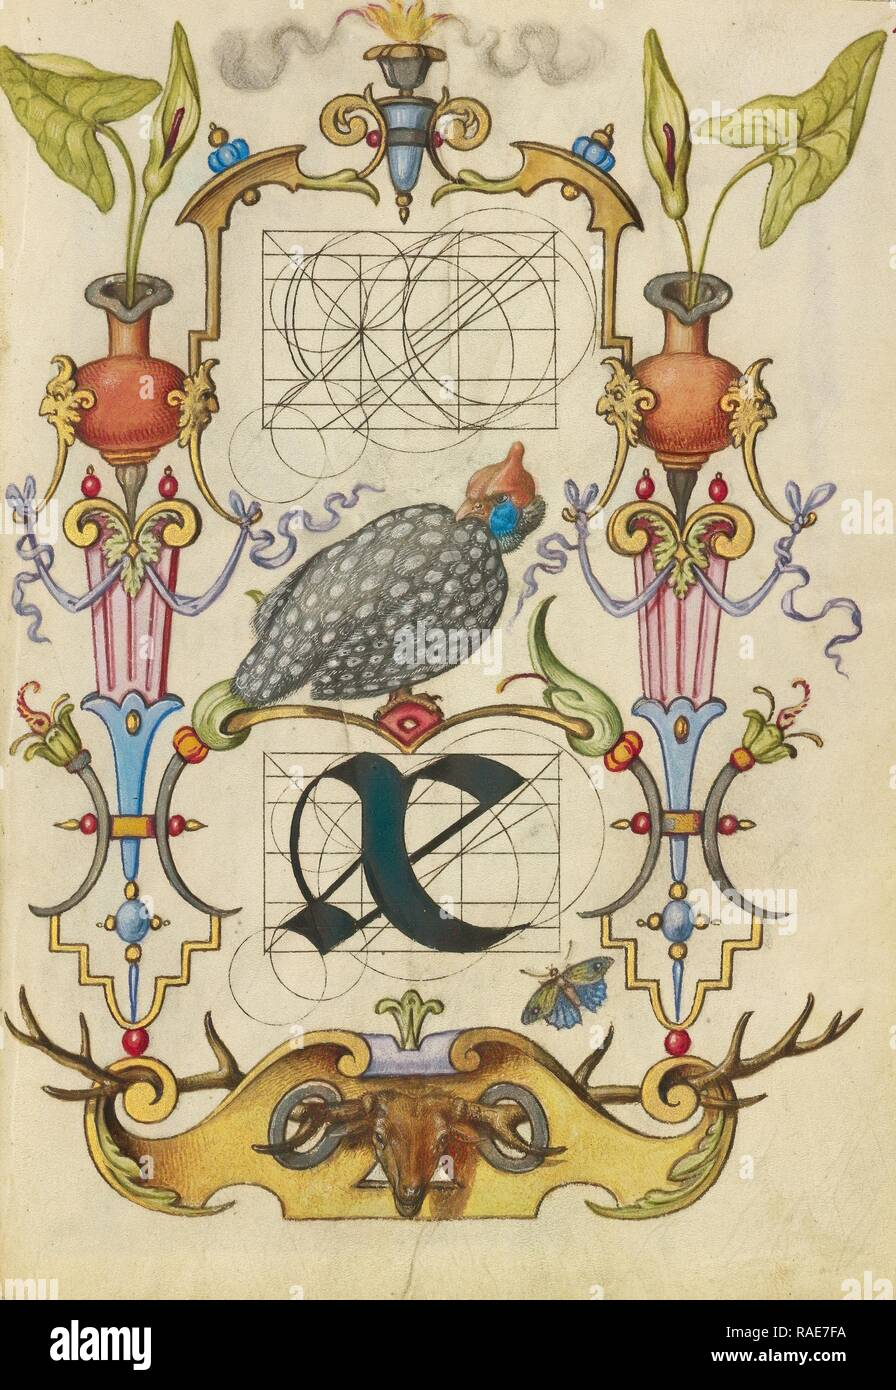 Guide for Constructing the Ligature ae, Joris Hoefnagel (Flemish , Hungarian, 1542 - 1600), Vienna, Austria, about reimagined - Stock Image